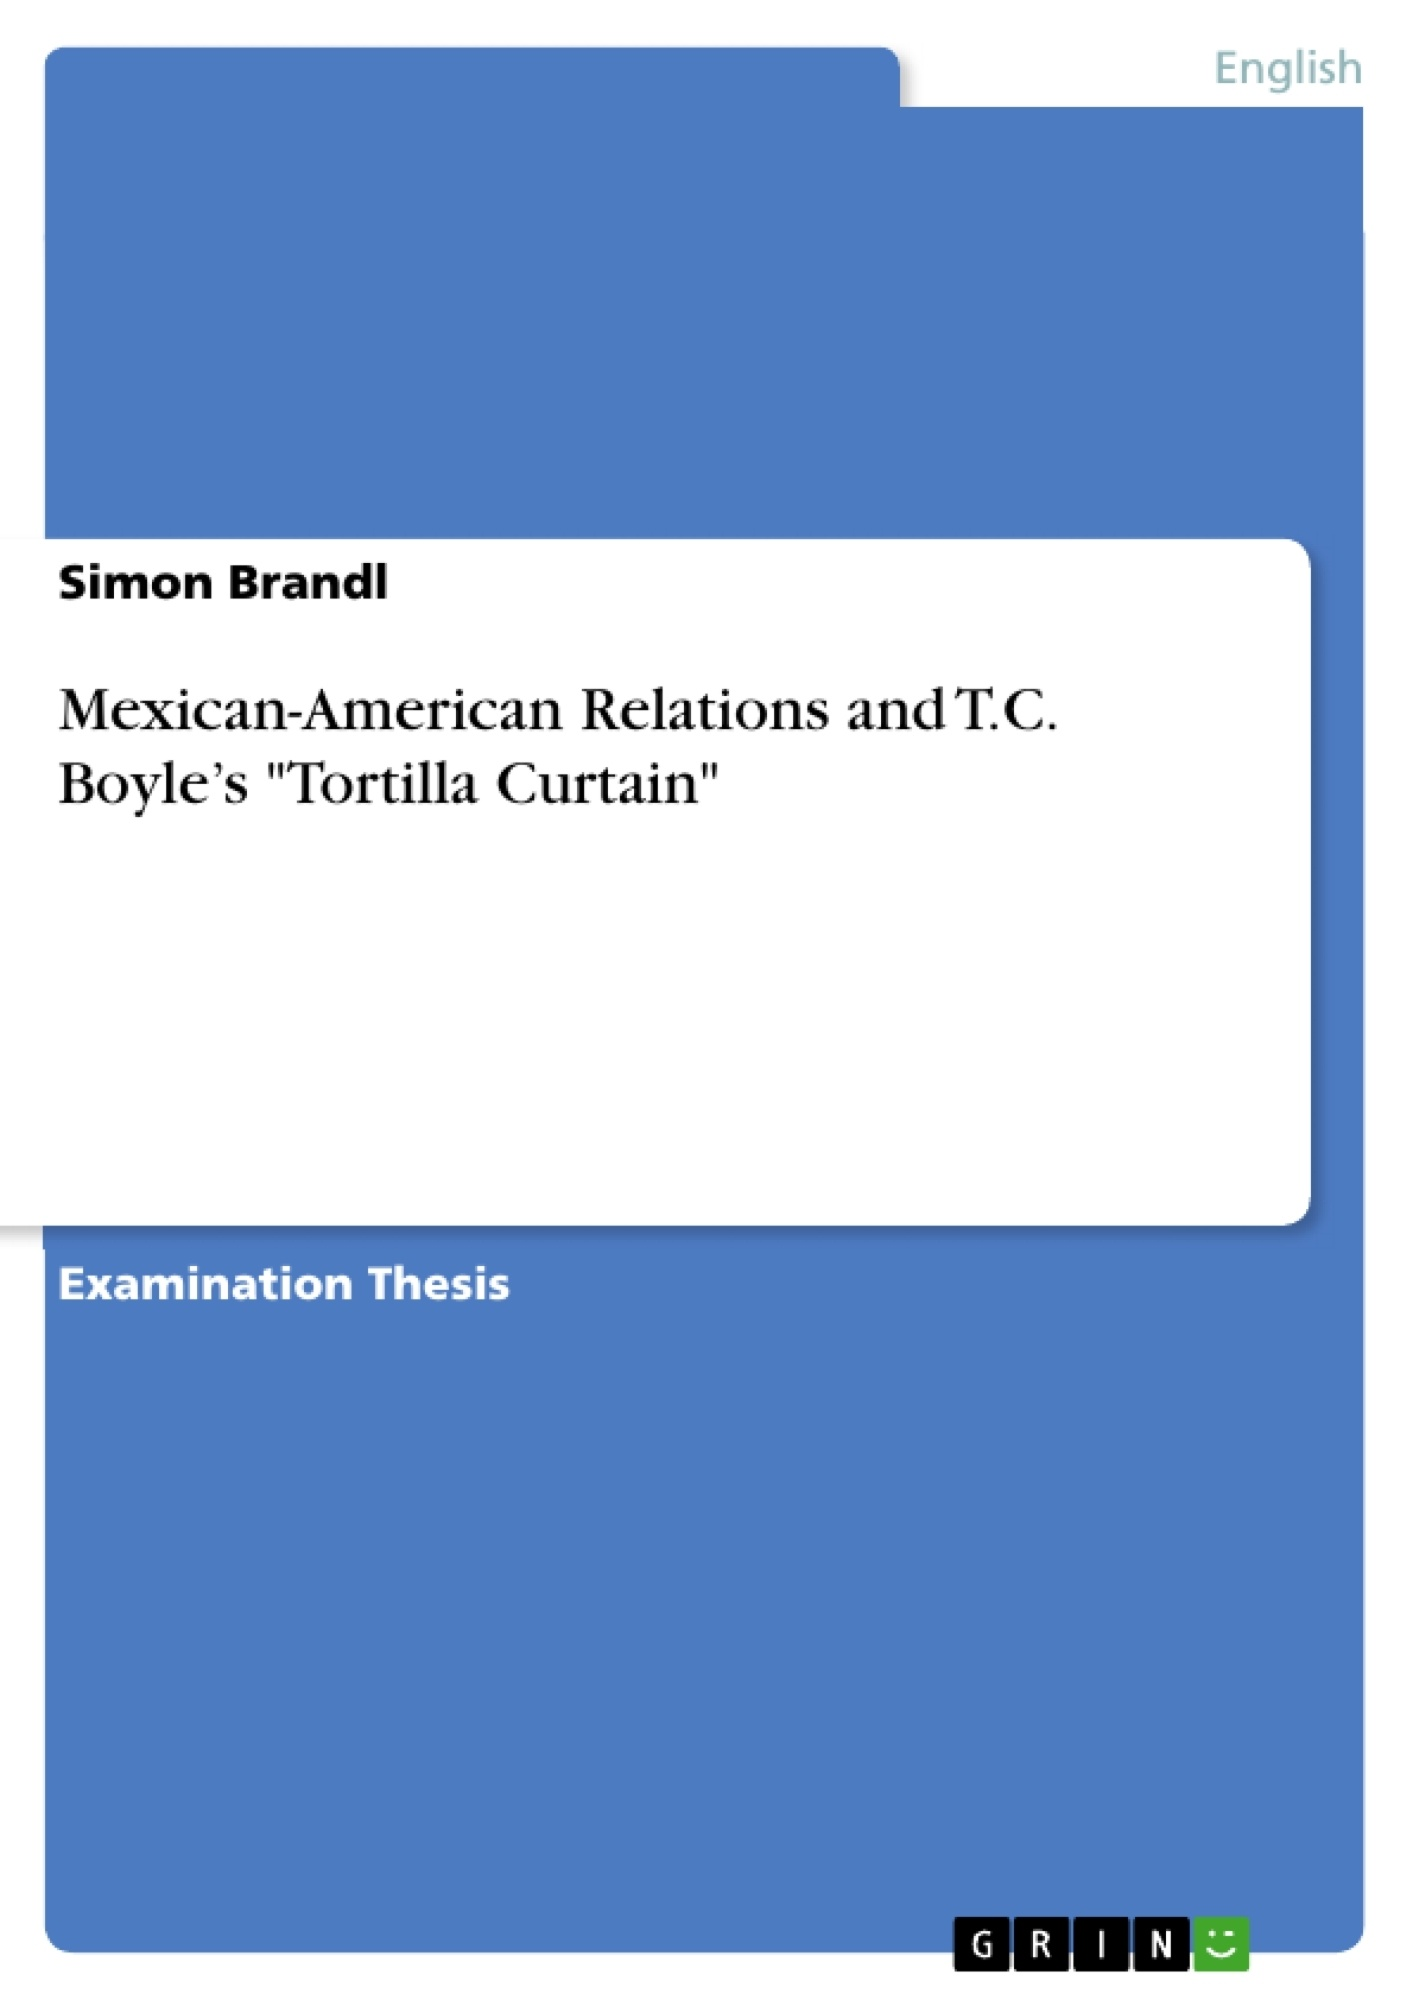 """mexican-american relations and t.c. boyle's """"tortilla curtain"""